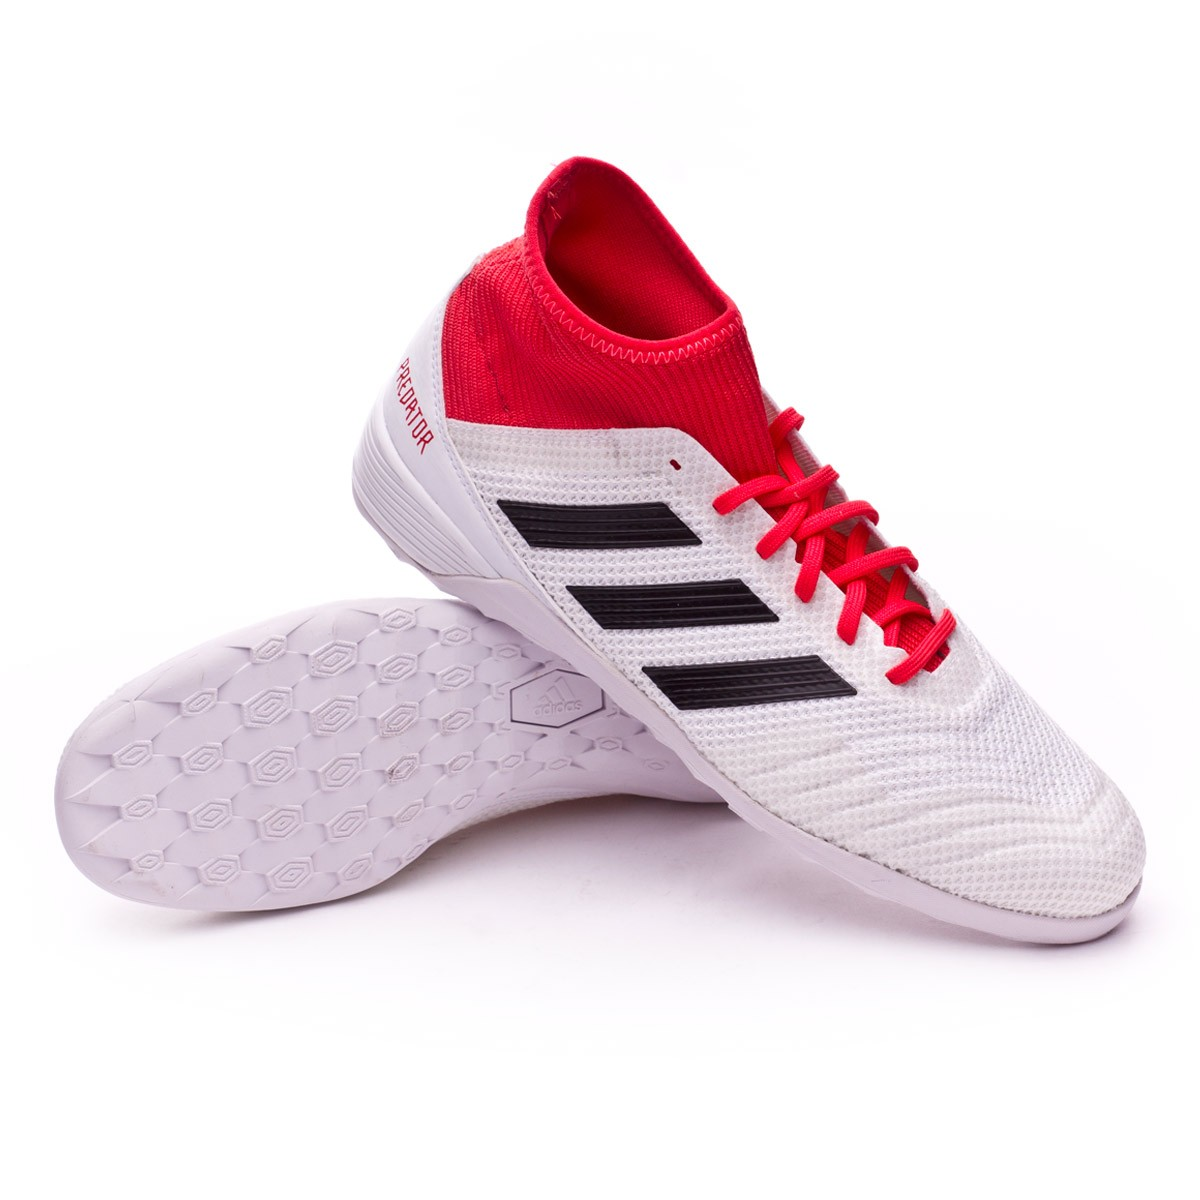 adidas Predator Tango 18.3 IN Futsal Boot. White-Core black-Real coral ... 6683b805d